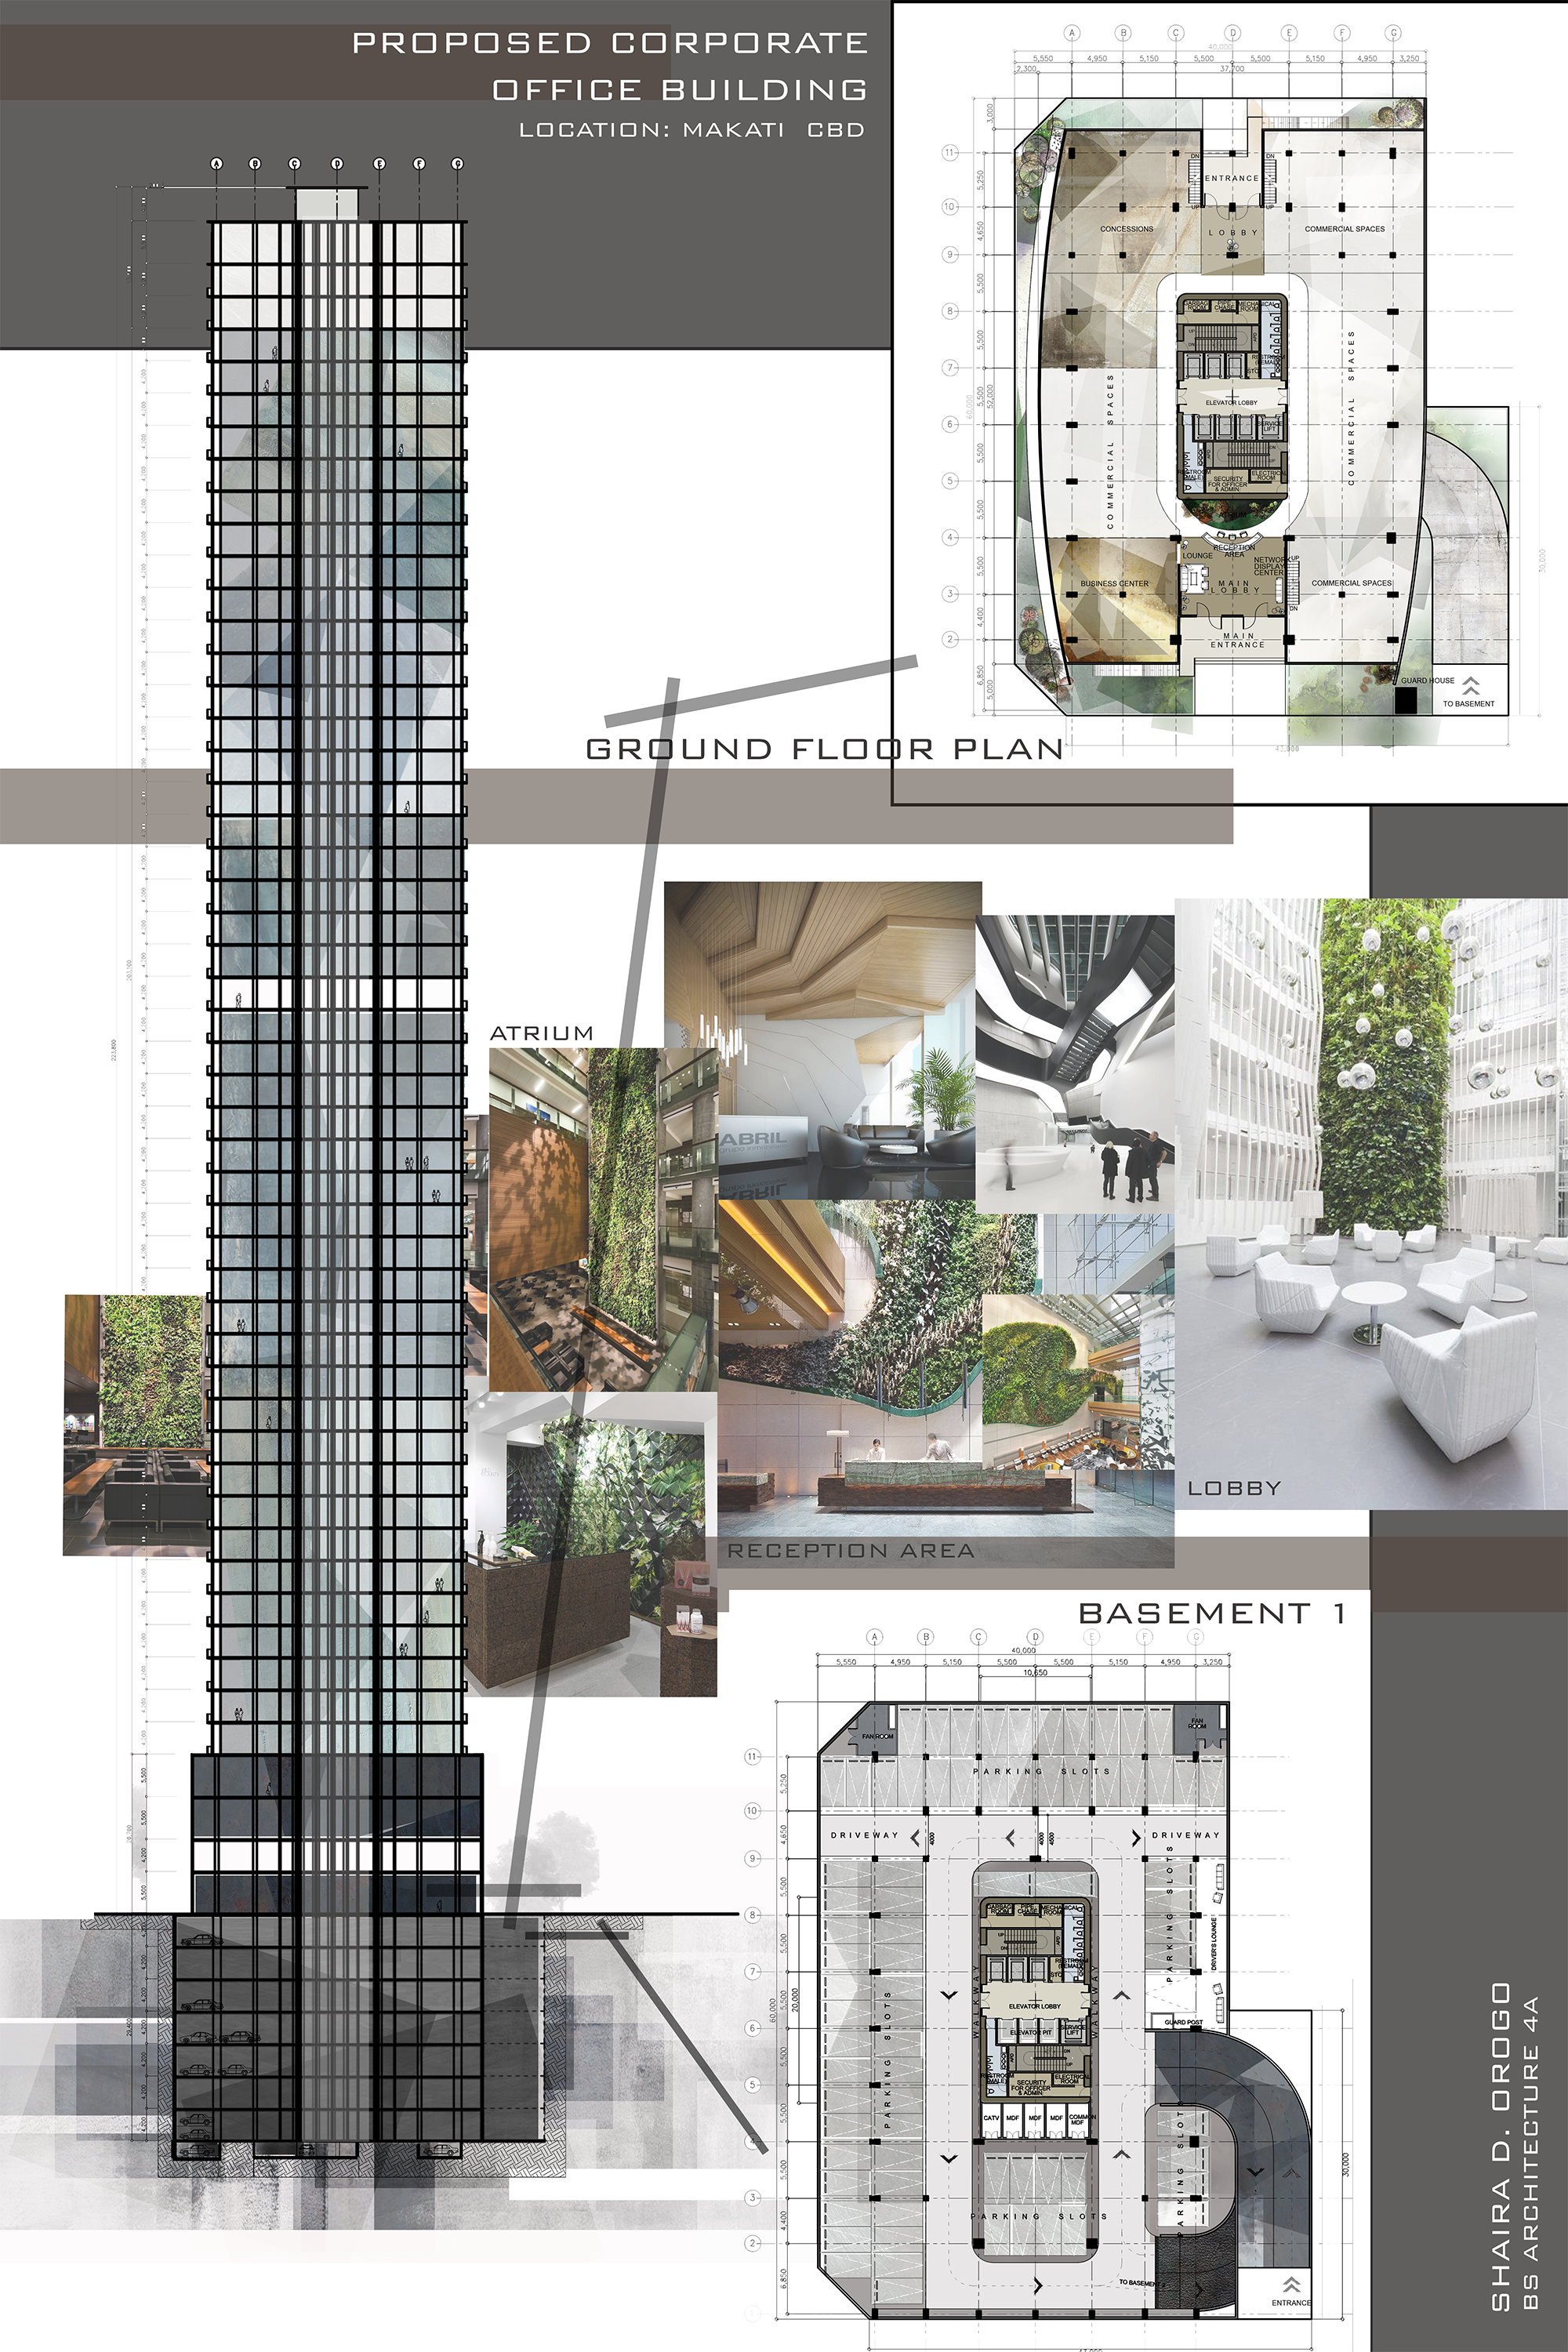 design 8 proposed corporate office building high rise building architectural layouts. Black Bedroom Furniture Sets. Home Design Ideas